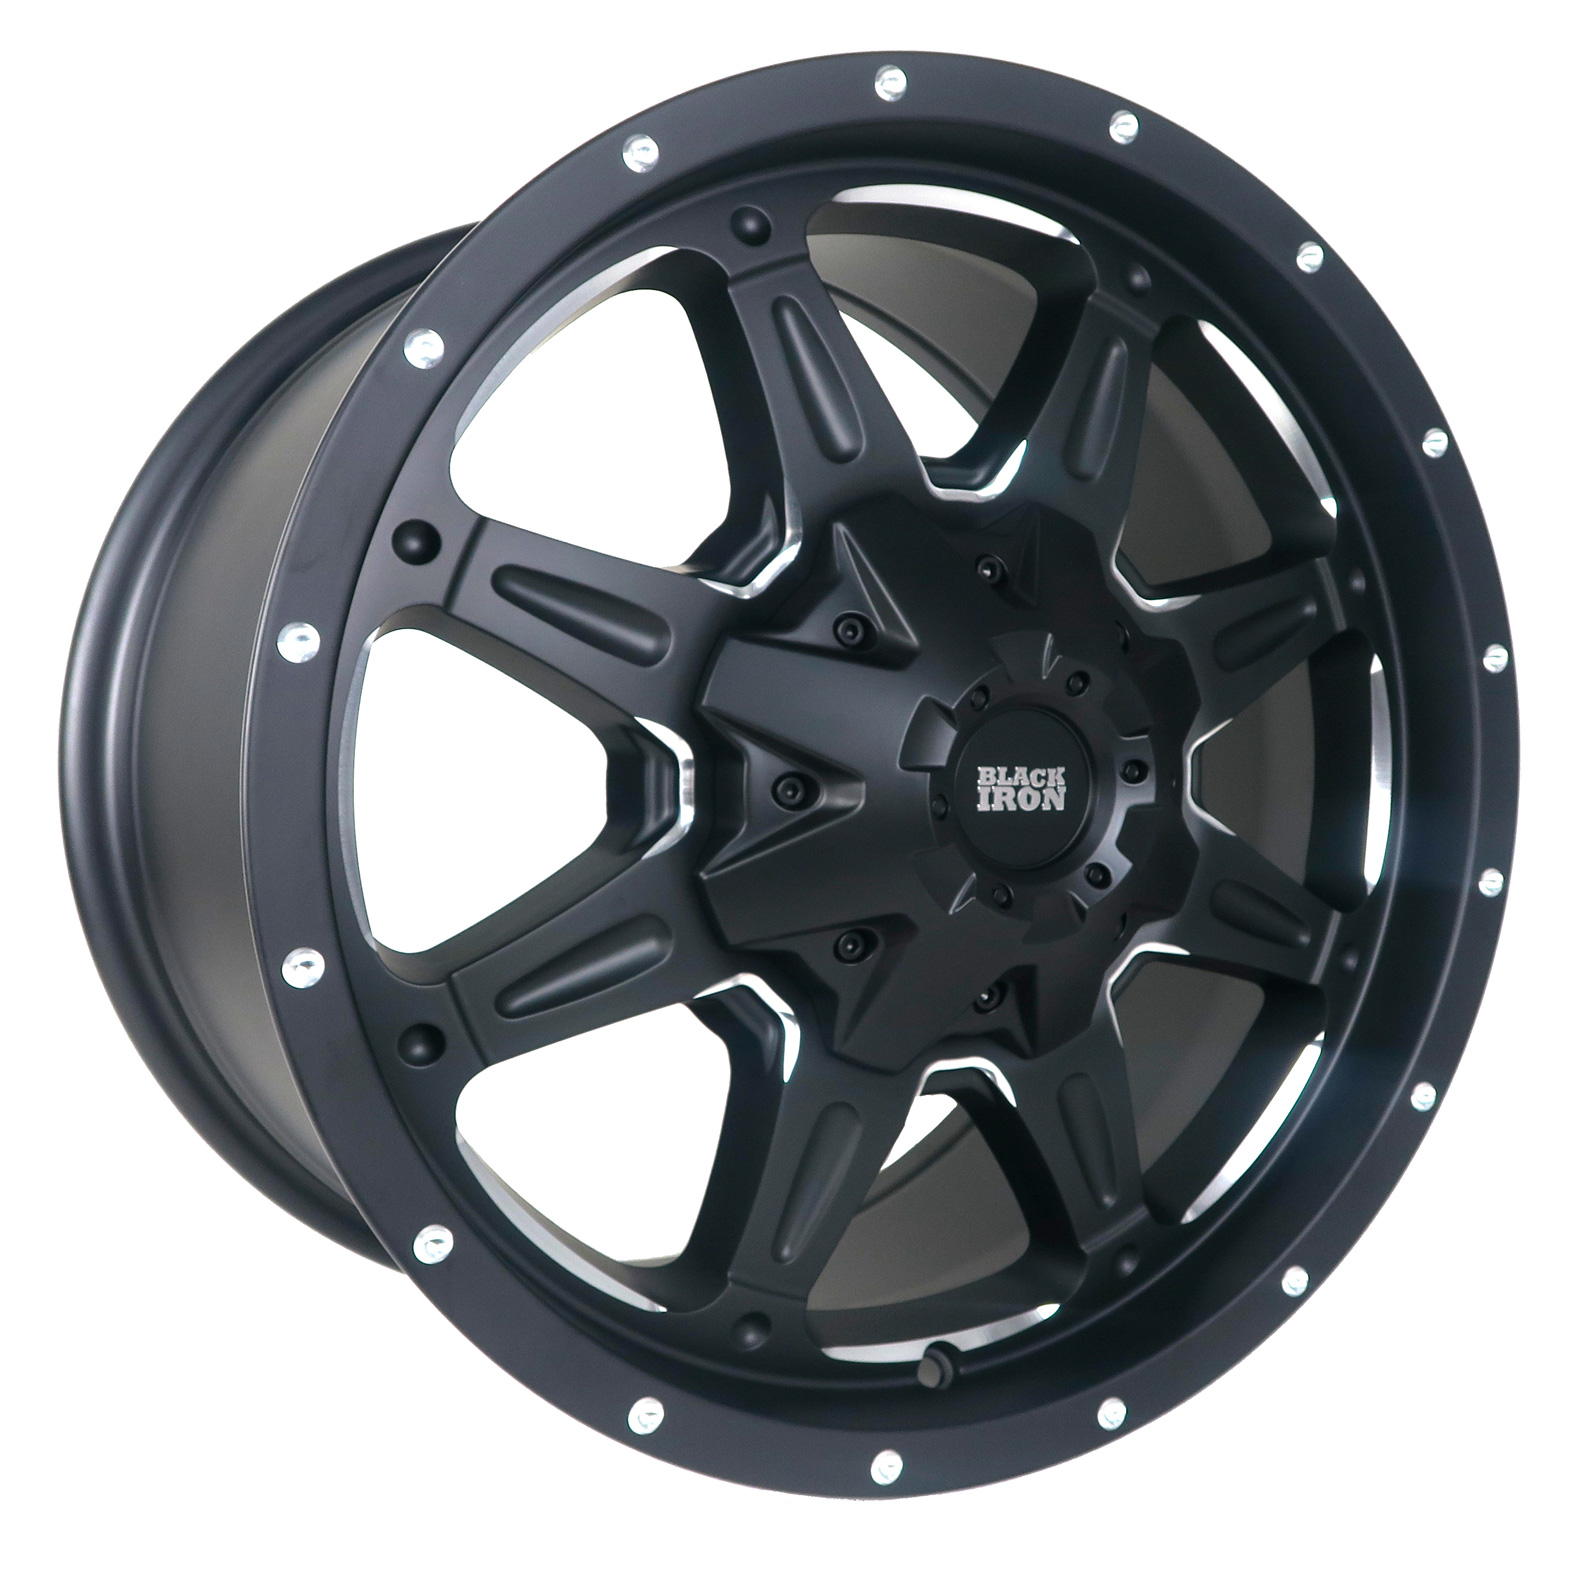 Black Iron Tracker Black Milled Wheel